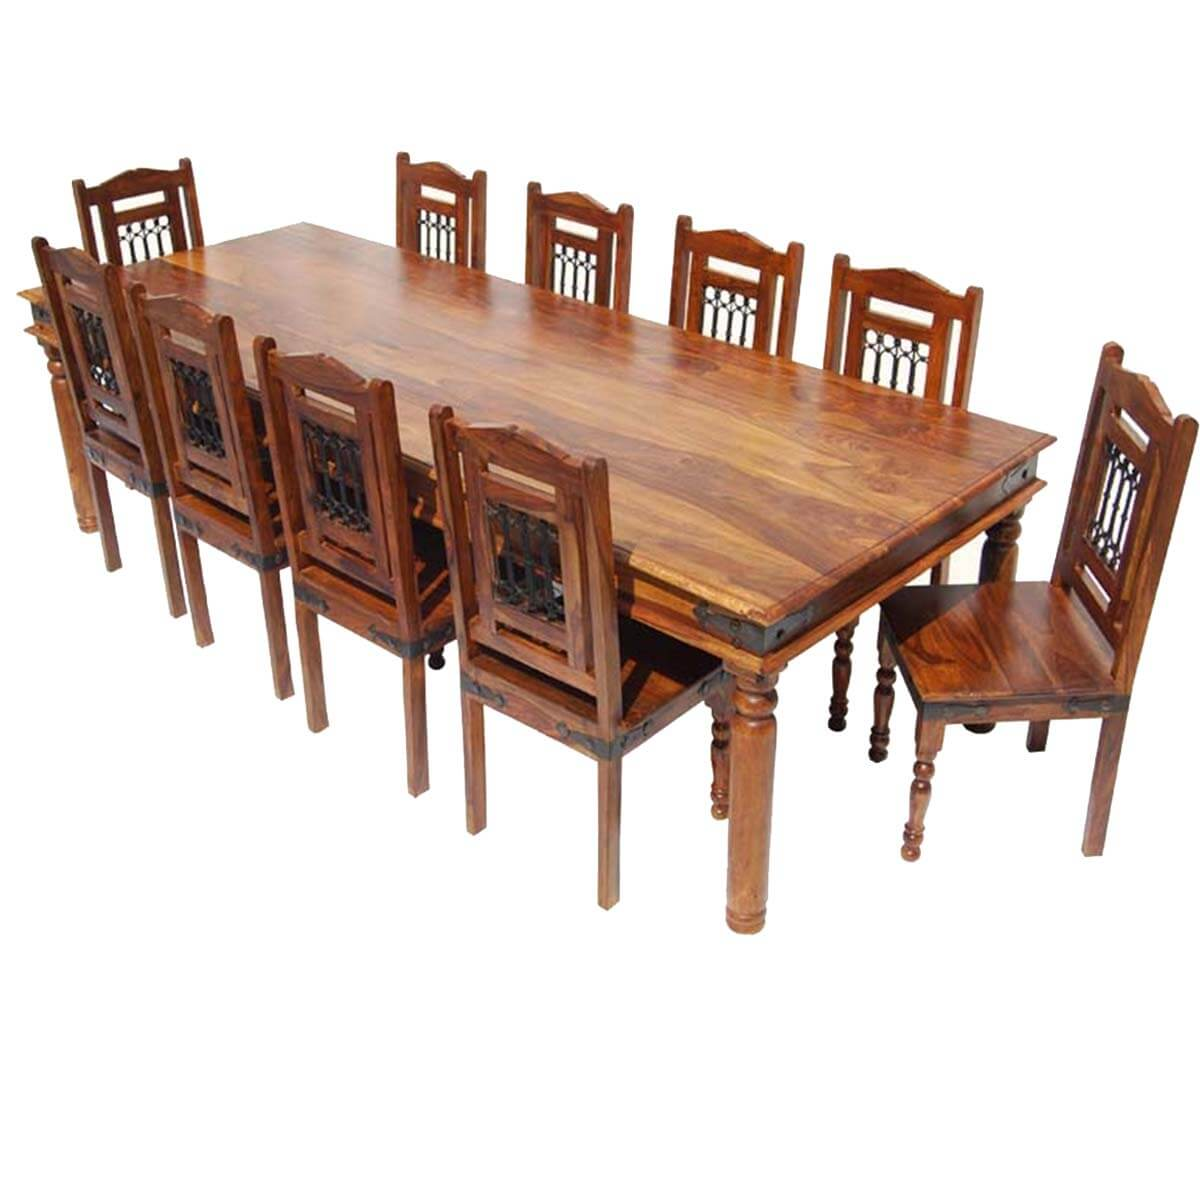 Solid wood large rustic dining room table chair sideboard set for Breakfast sets furniture